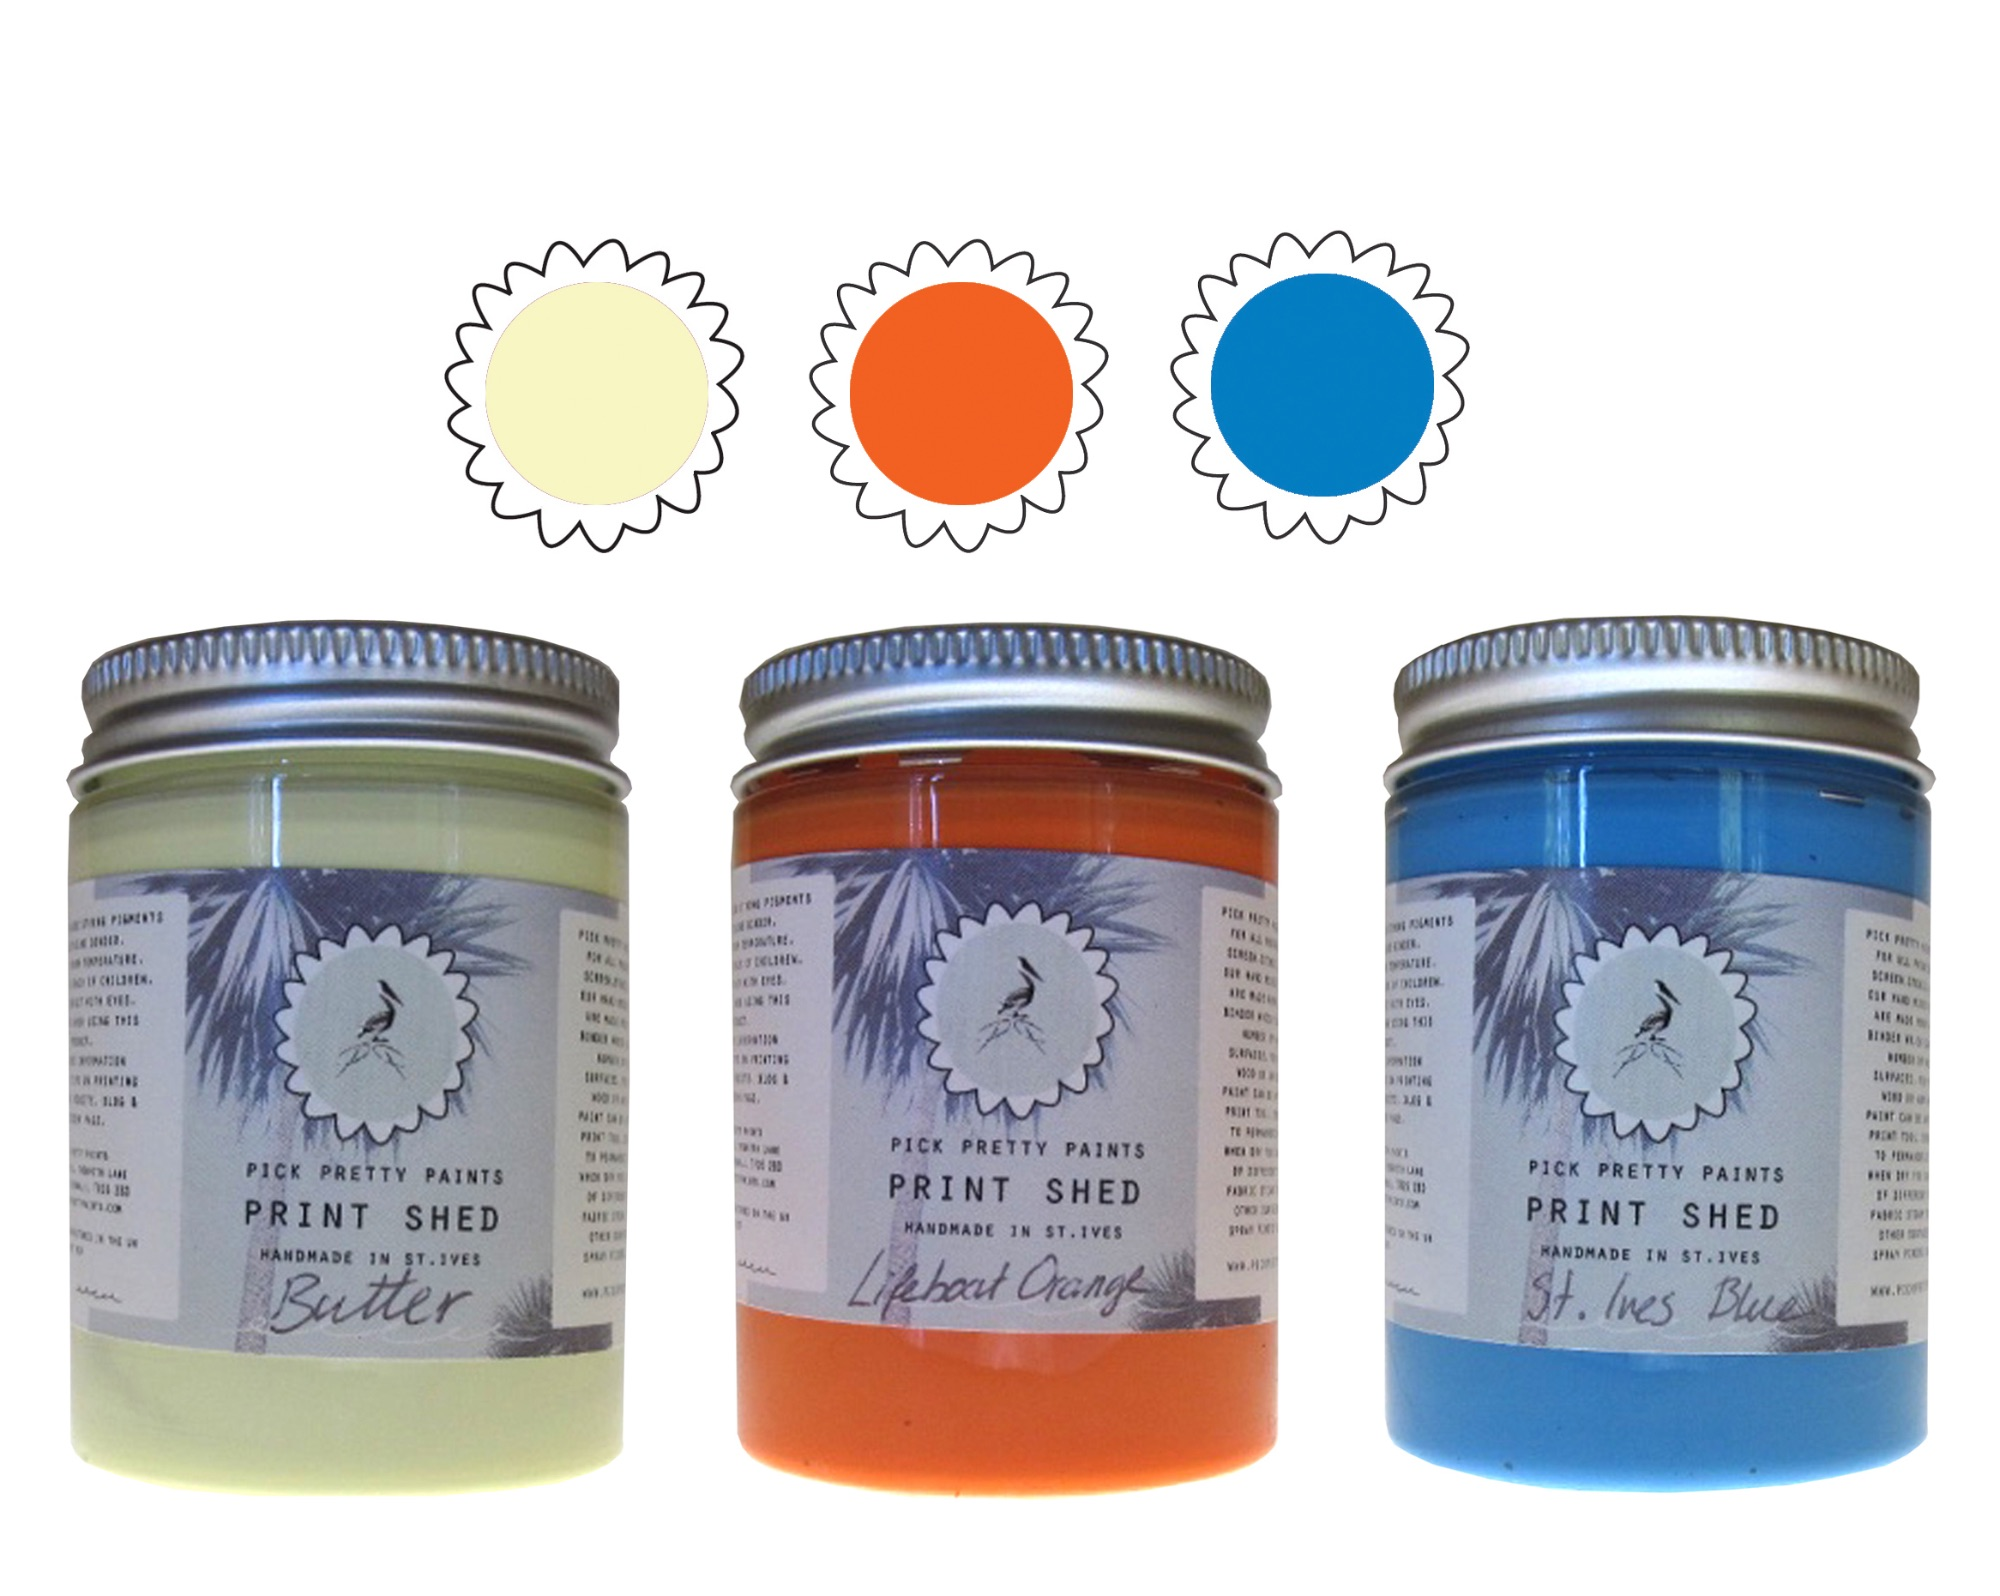 To shop our latest paints